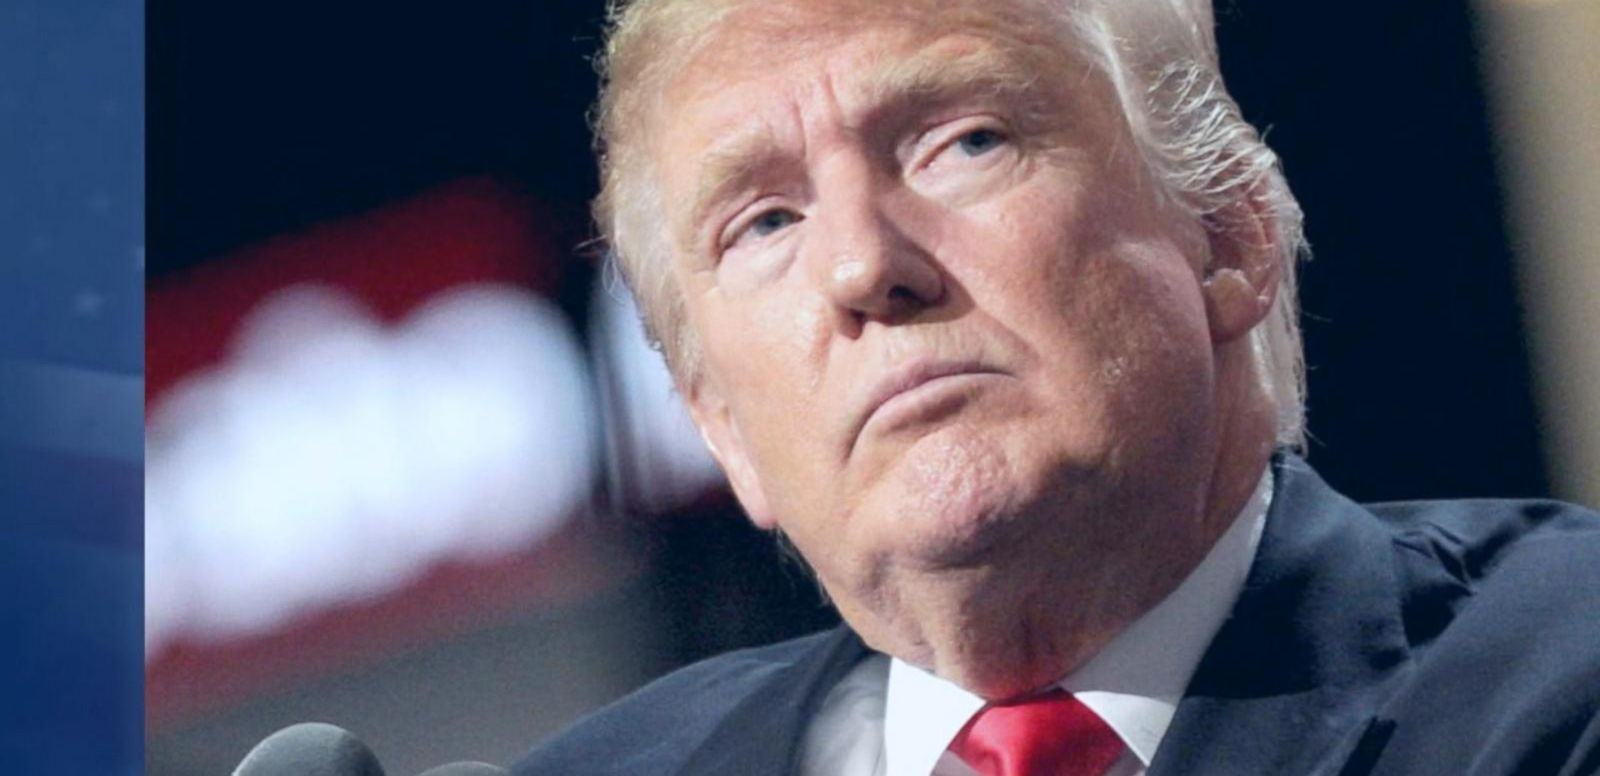 VIDEO: Donald Trump Says He Was 'Sarcastic' About Russian Hackers